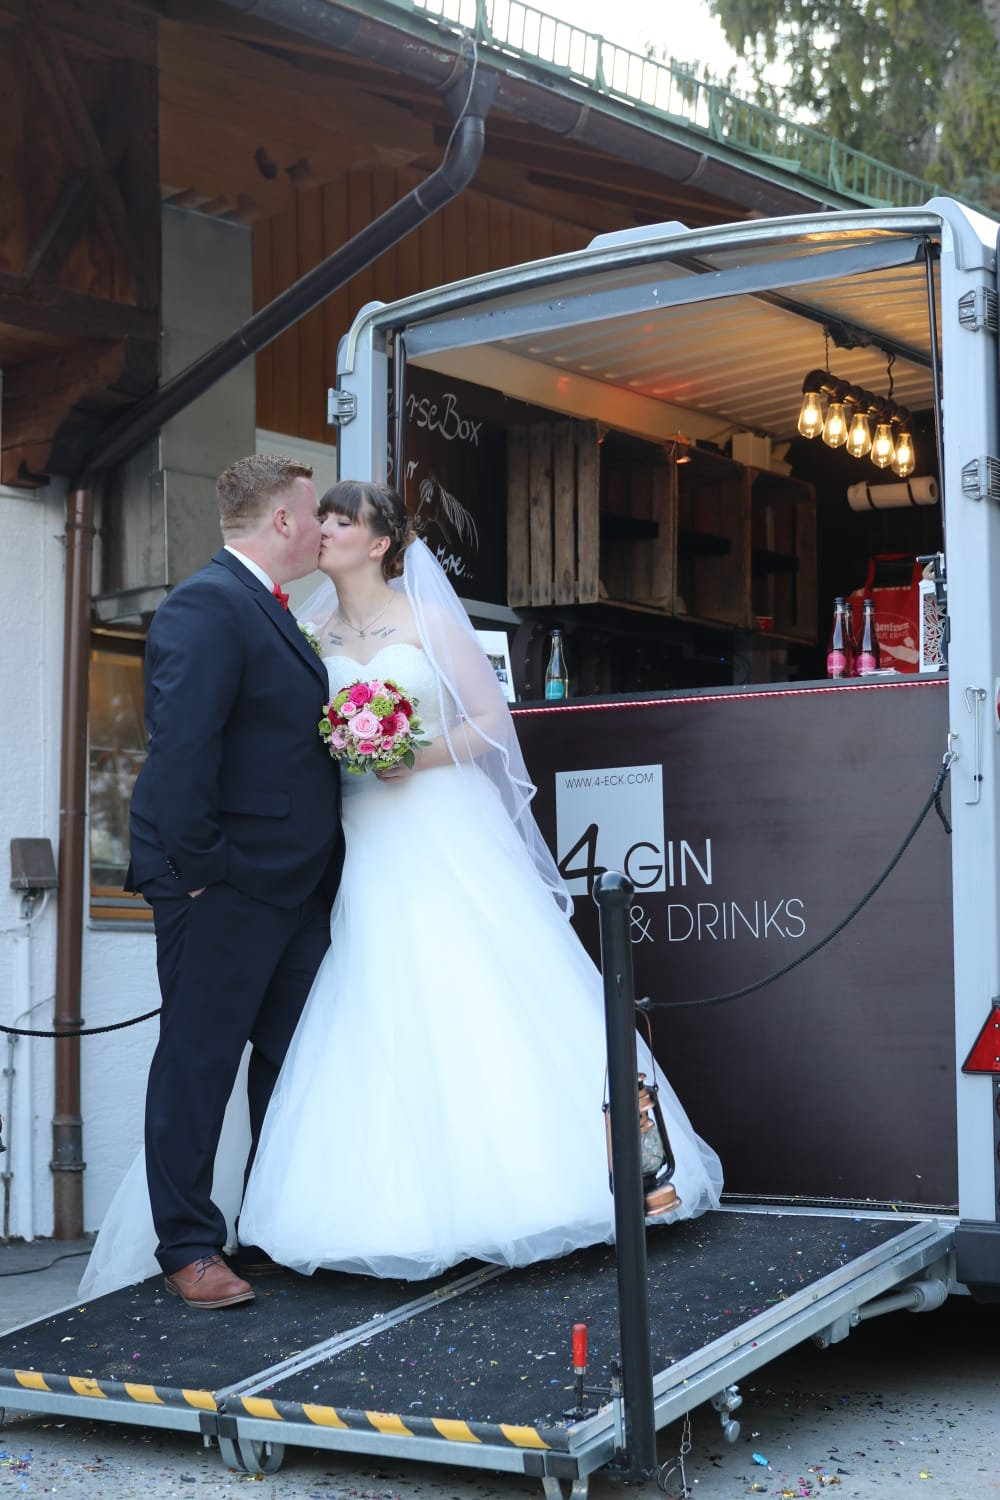 Brautpaar, Kuss, Hochzeit, Horsebox-Bar, Hochzeitsempfang, mobile Bar, Pop-up-Bar, Bar-Team, Event-Bar, rent a Bar, Garmisch-Partenkirchen, Hochzeitsbar, 4 Gin & Drinks